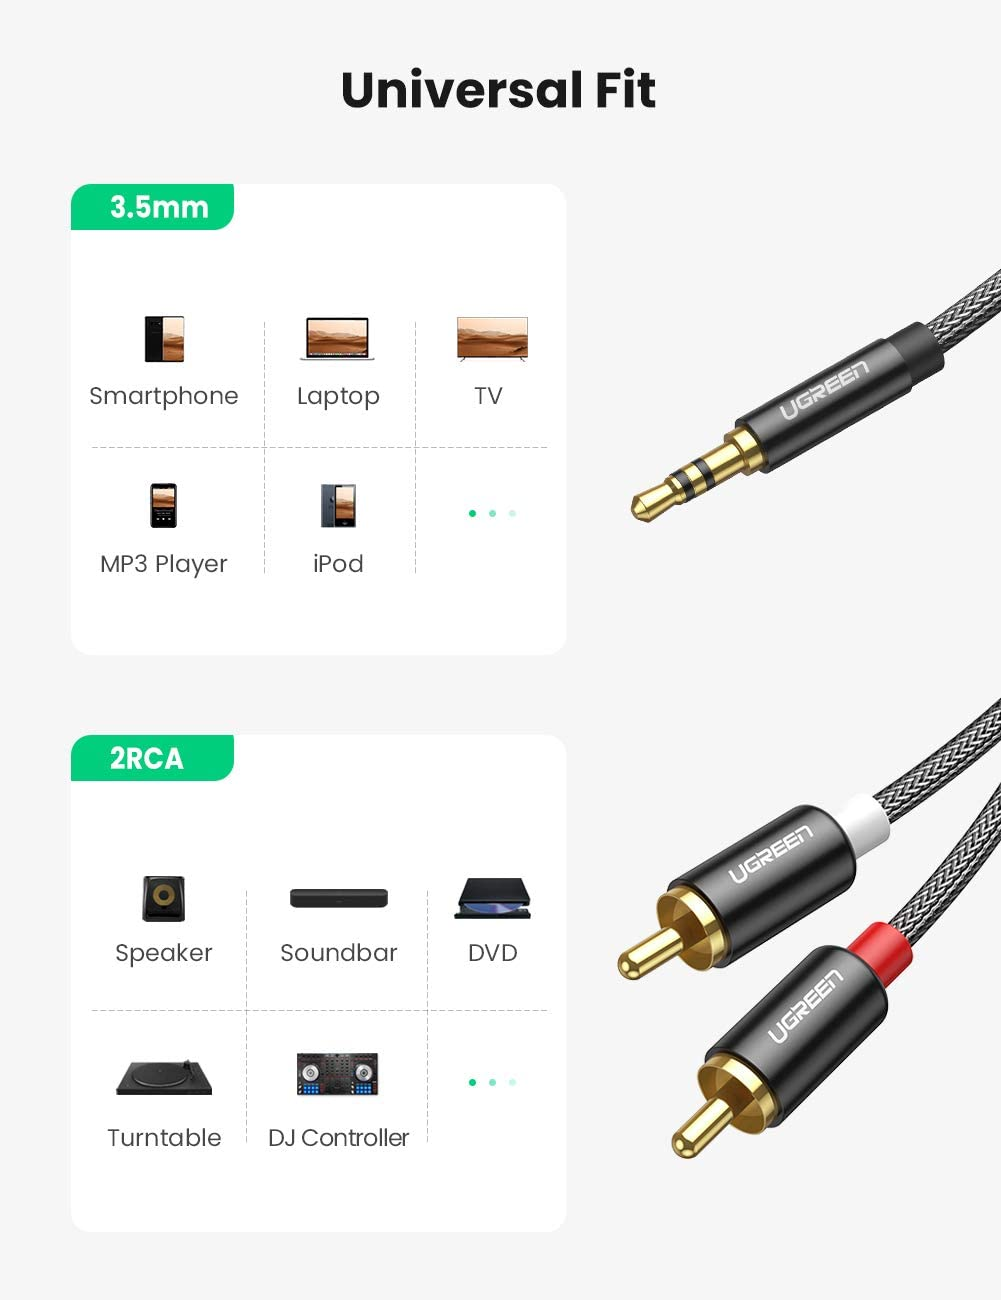 10ft UGREEN 3.5mm to 2 Male RCA Adapter Cable Stereo Aux Jack Male to 2RCA Phono Y Audio Splitter Connector Braided for Speakers Laptop Tablet Car and More MP3 Player iPod Smartphone